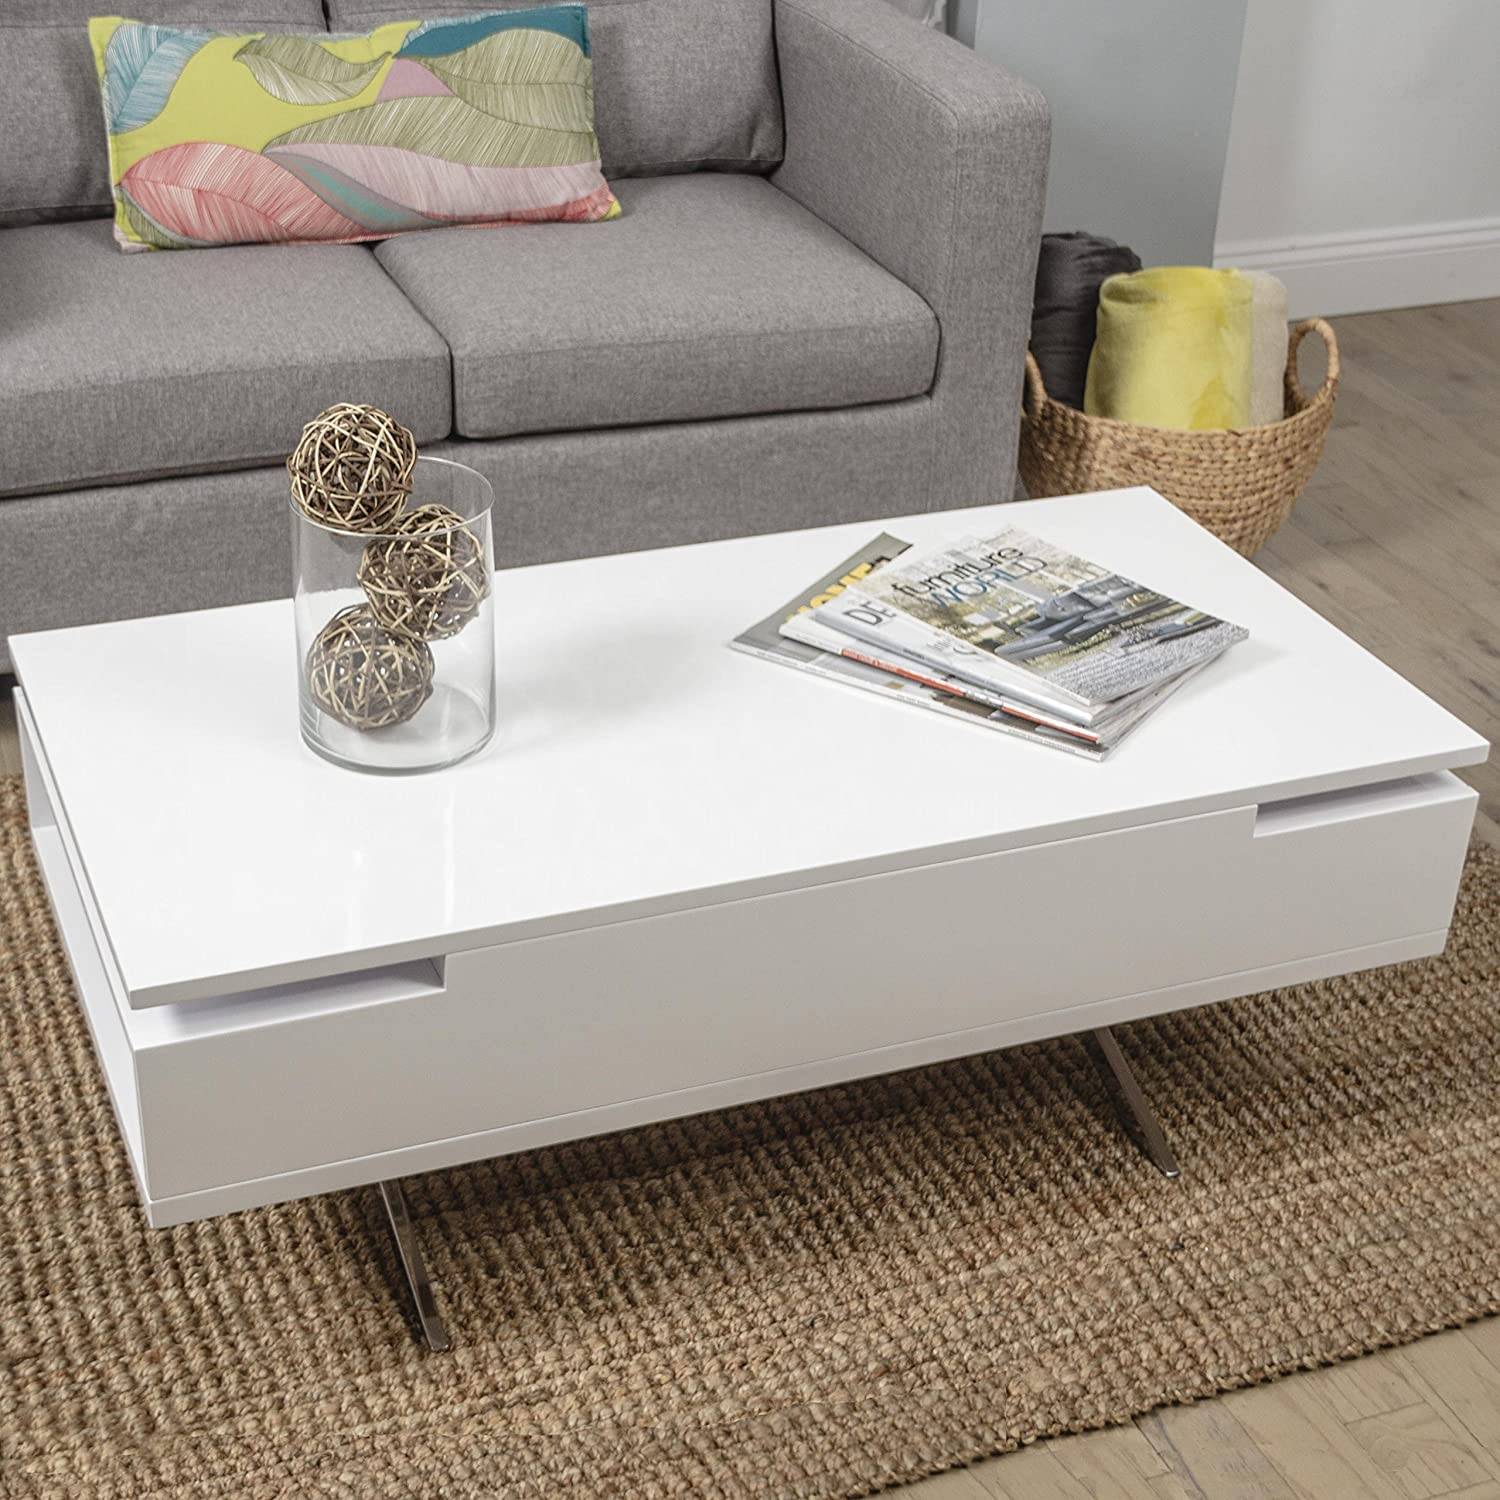 Amazon.com: In The Mix MIX High Gloss Lacquer Wood Stainless Steel Legs  White Lift Top Rectangular Coffee Table With Hidden Storage: Kitchen U0026  Dining